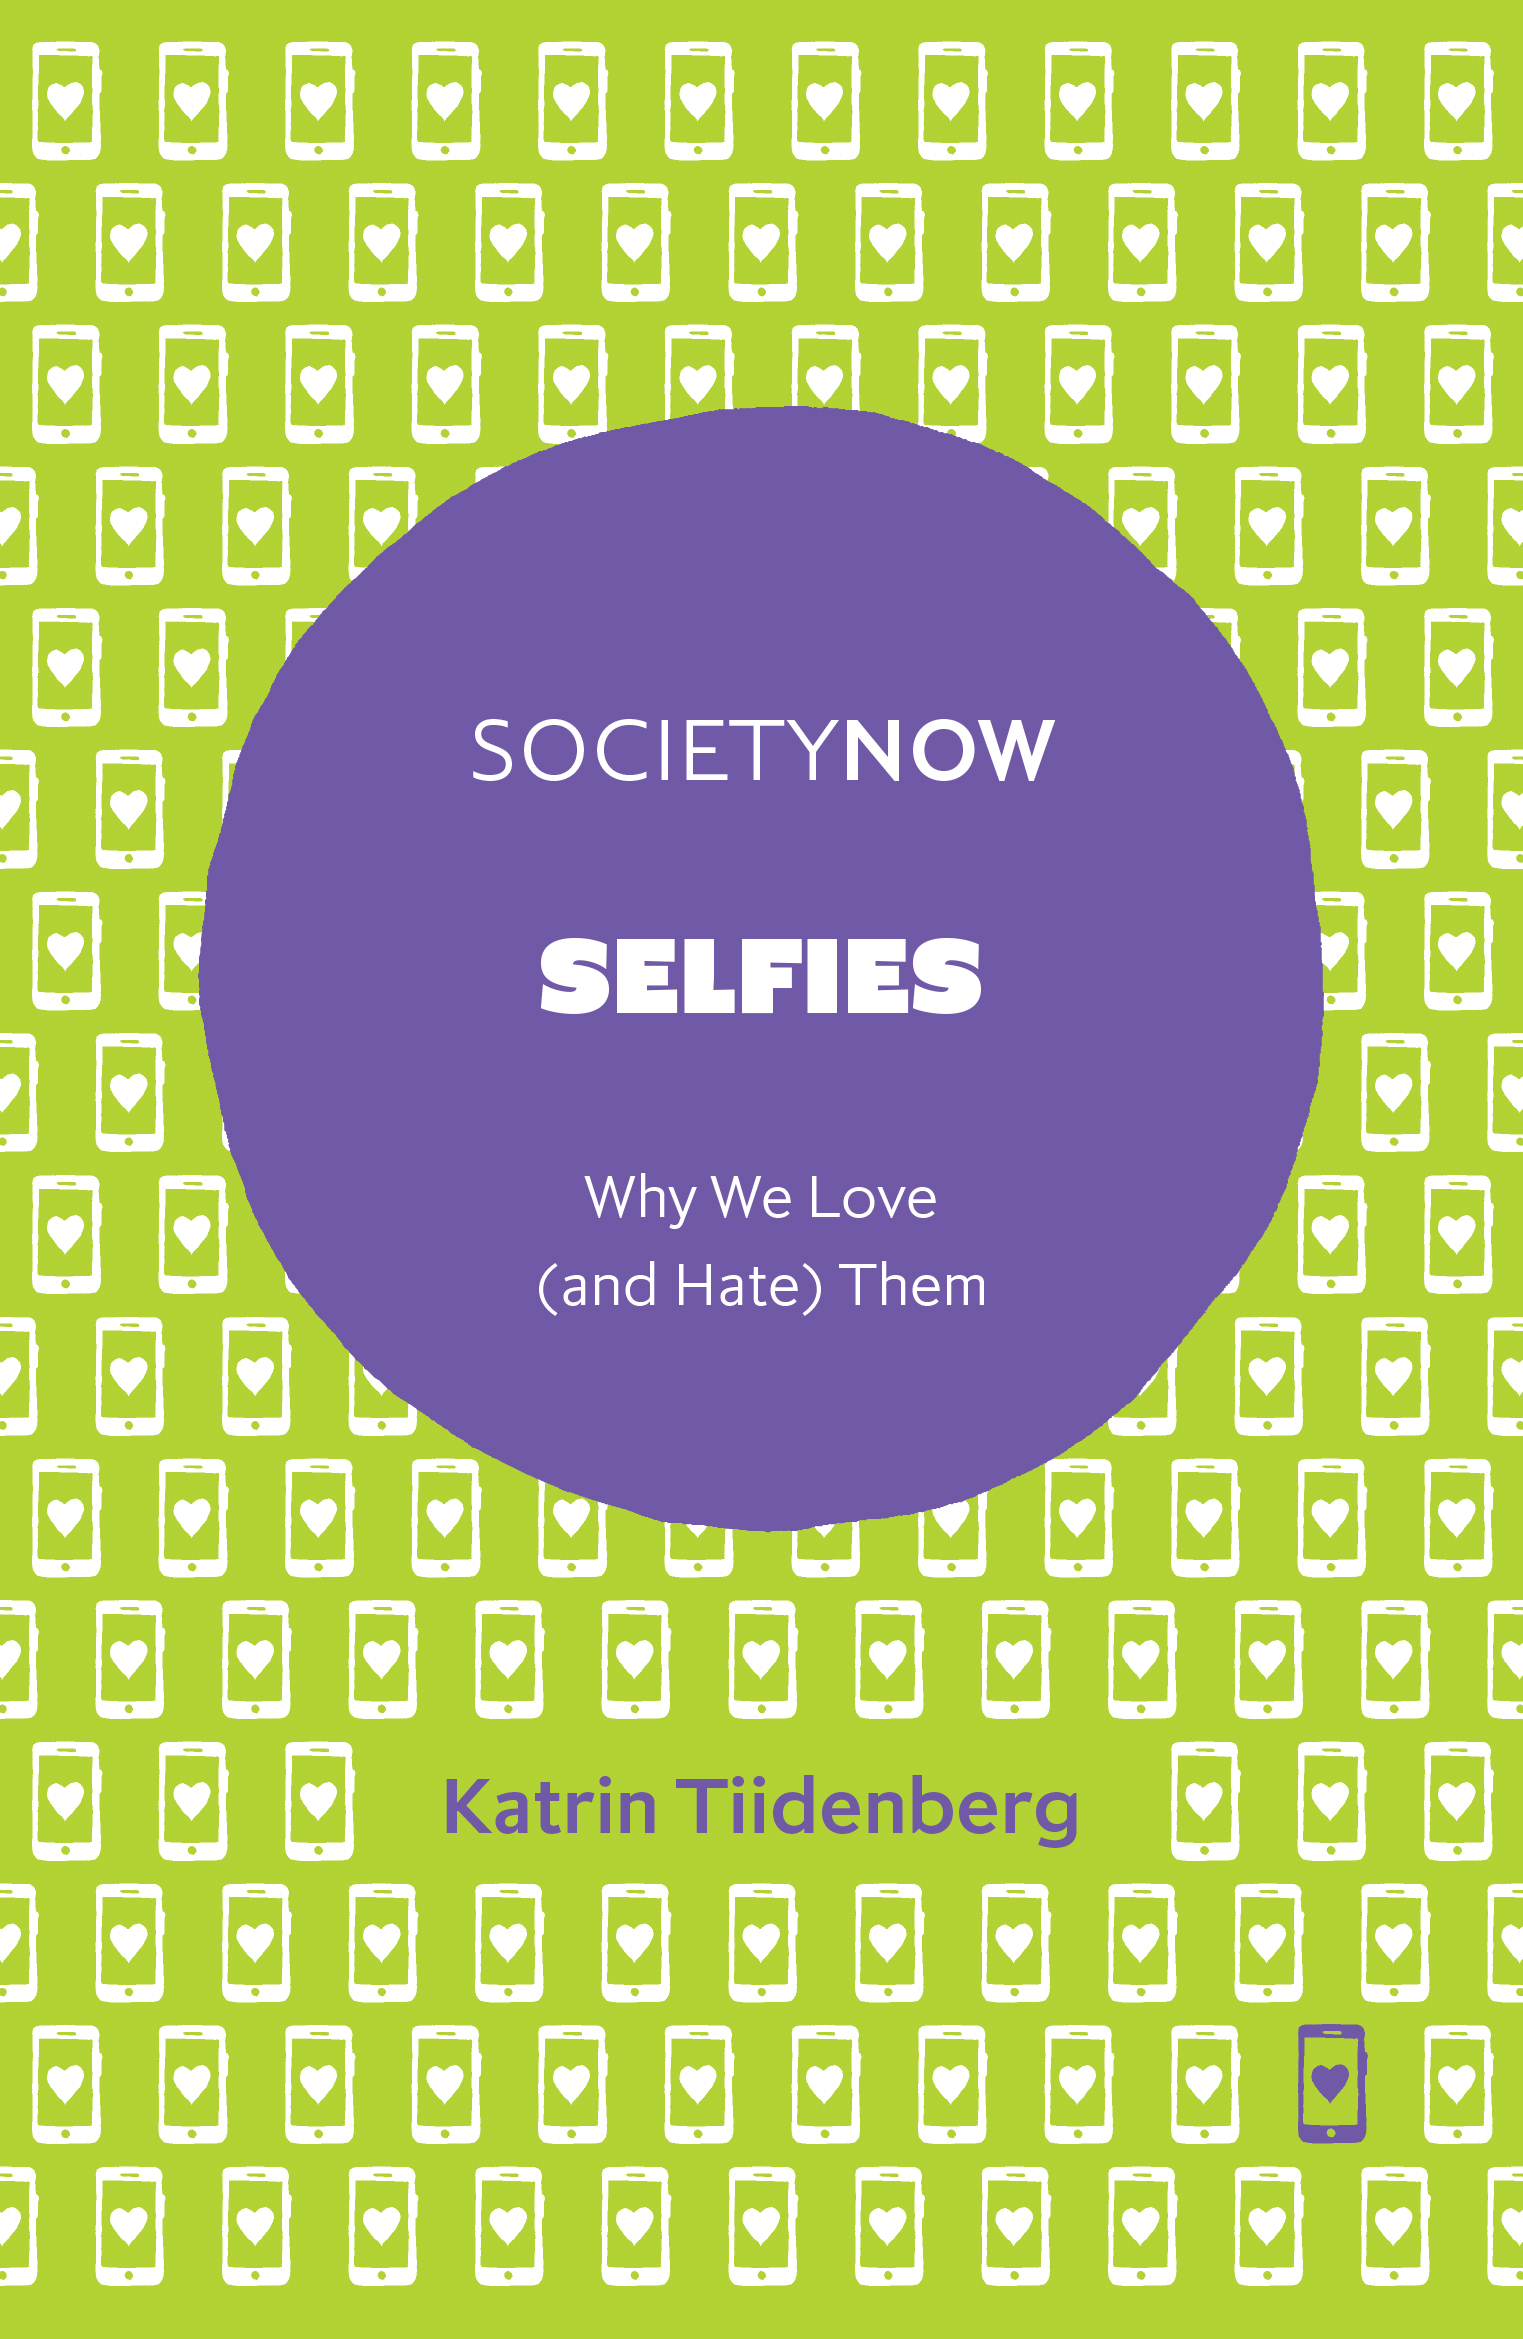 Selfies: Why We Love (and Hate) Them